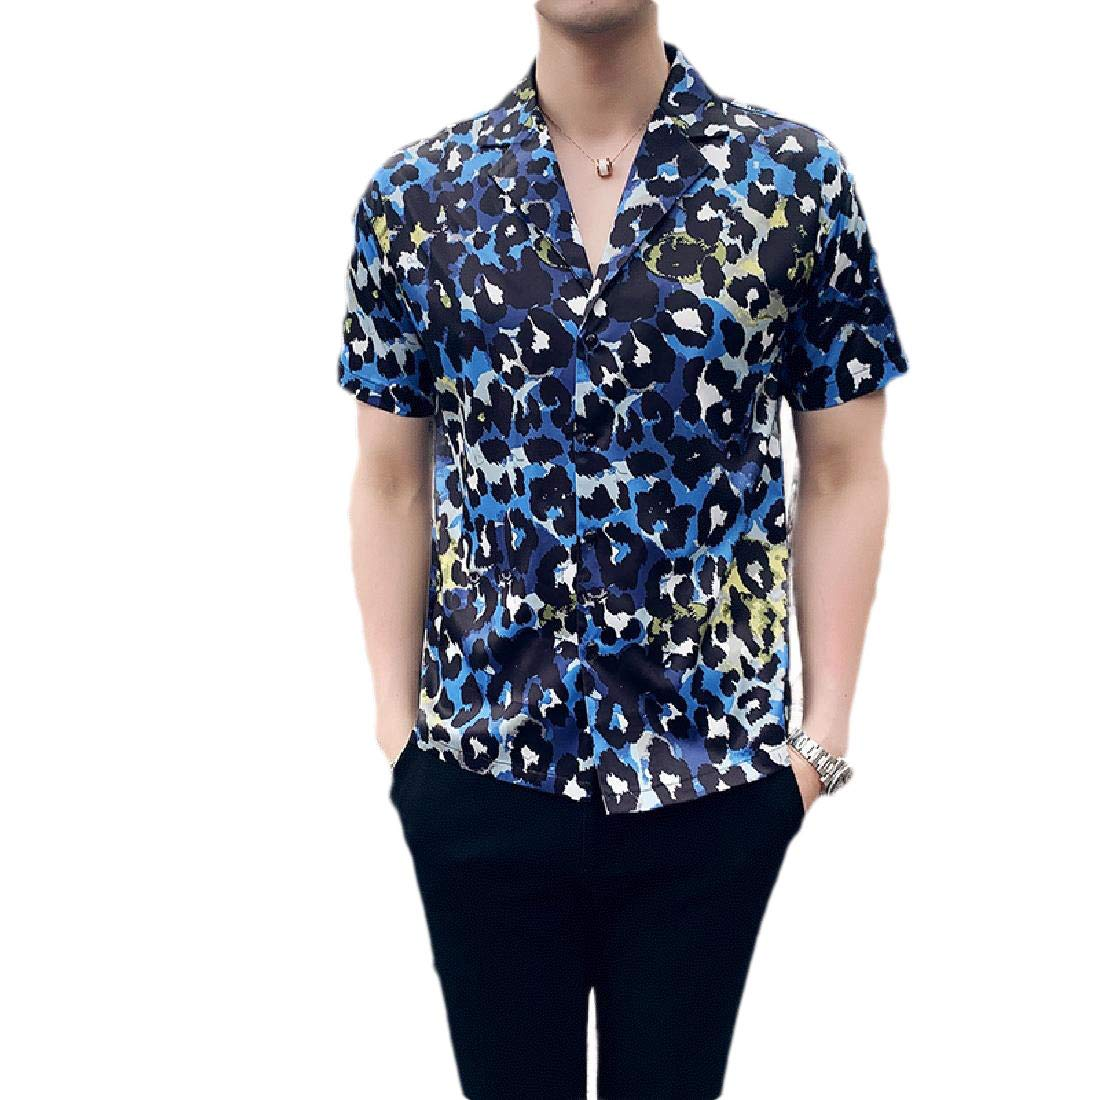 Zimaes-Men Floral Printed Short Sleeve Button Down Point Collar T-Shirts